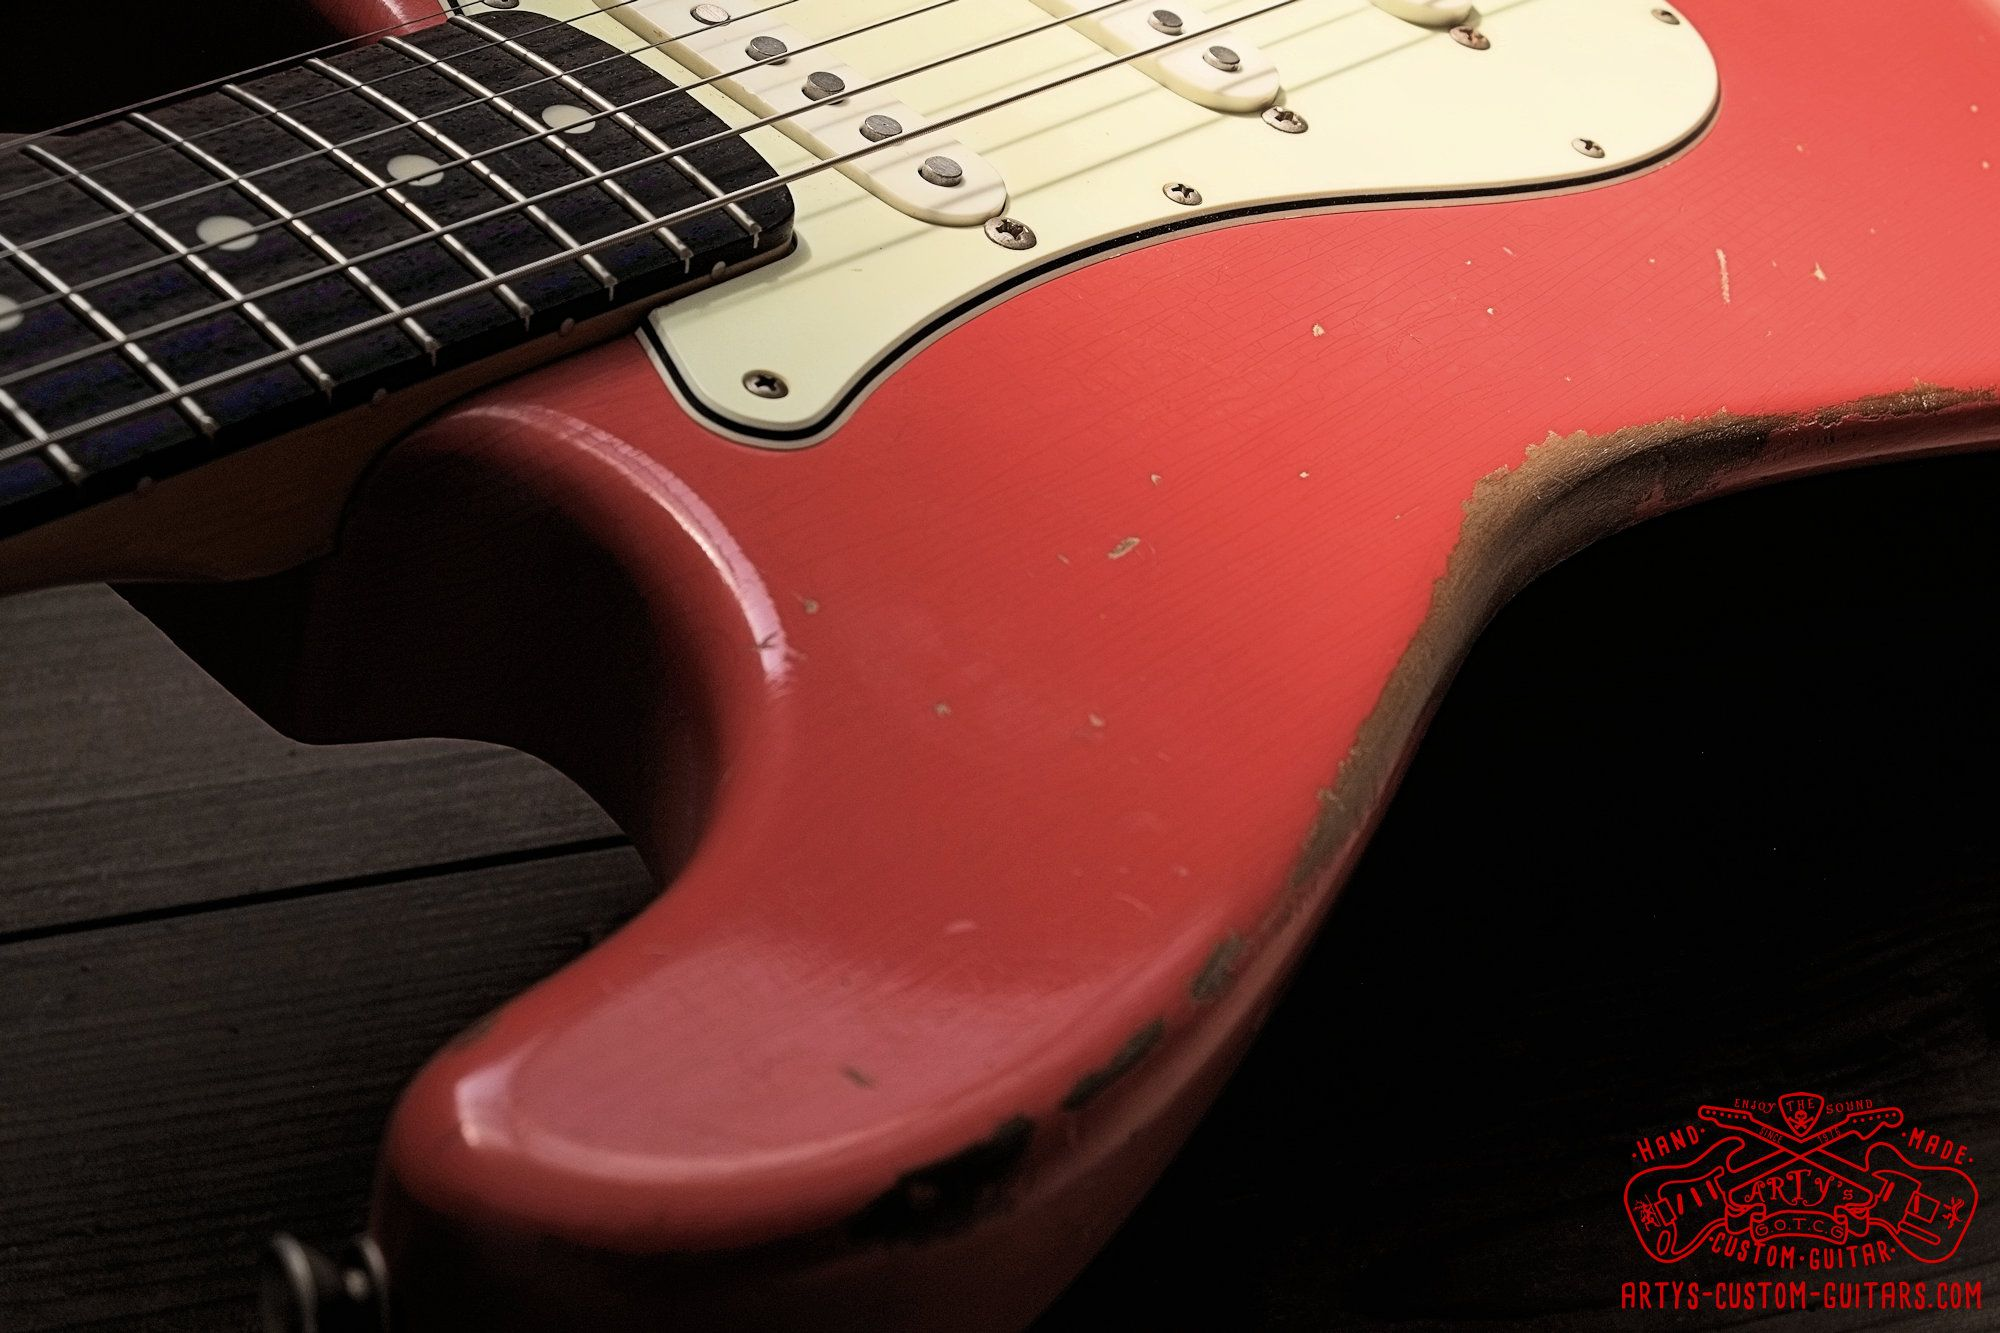 stratocaster 62 heavy relic fiesta red body artys custom guitars shop strat relicing swamp ash swampash [ 2000 x 1333 Pixel ]